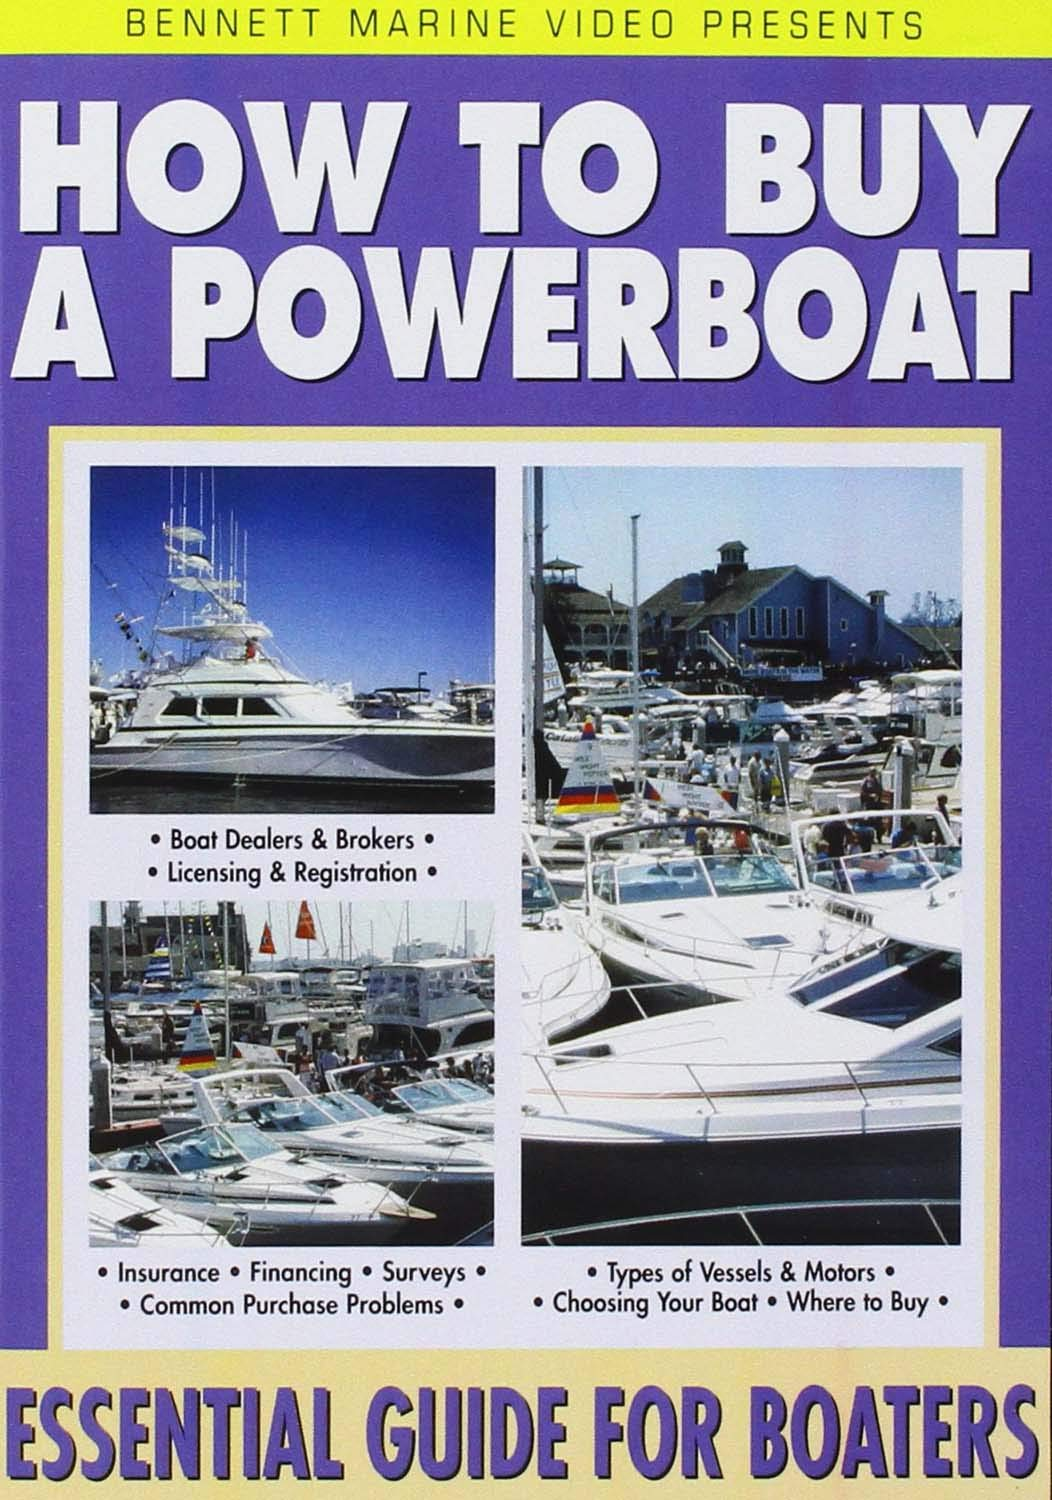 How to Buy a Powerboat by Bennett